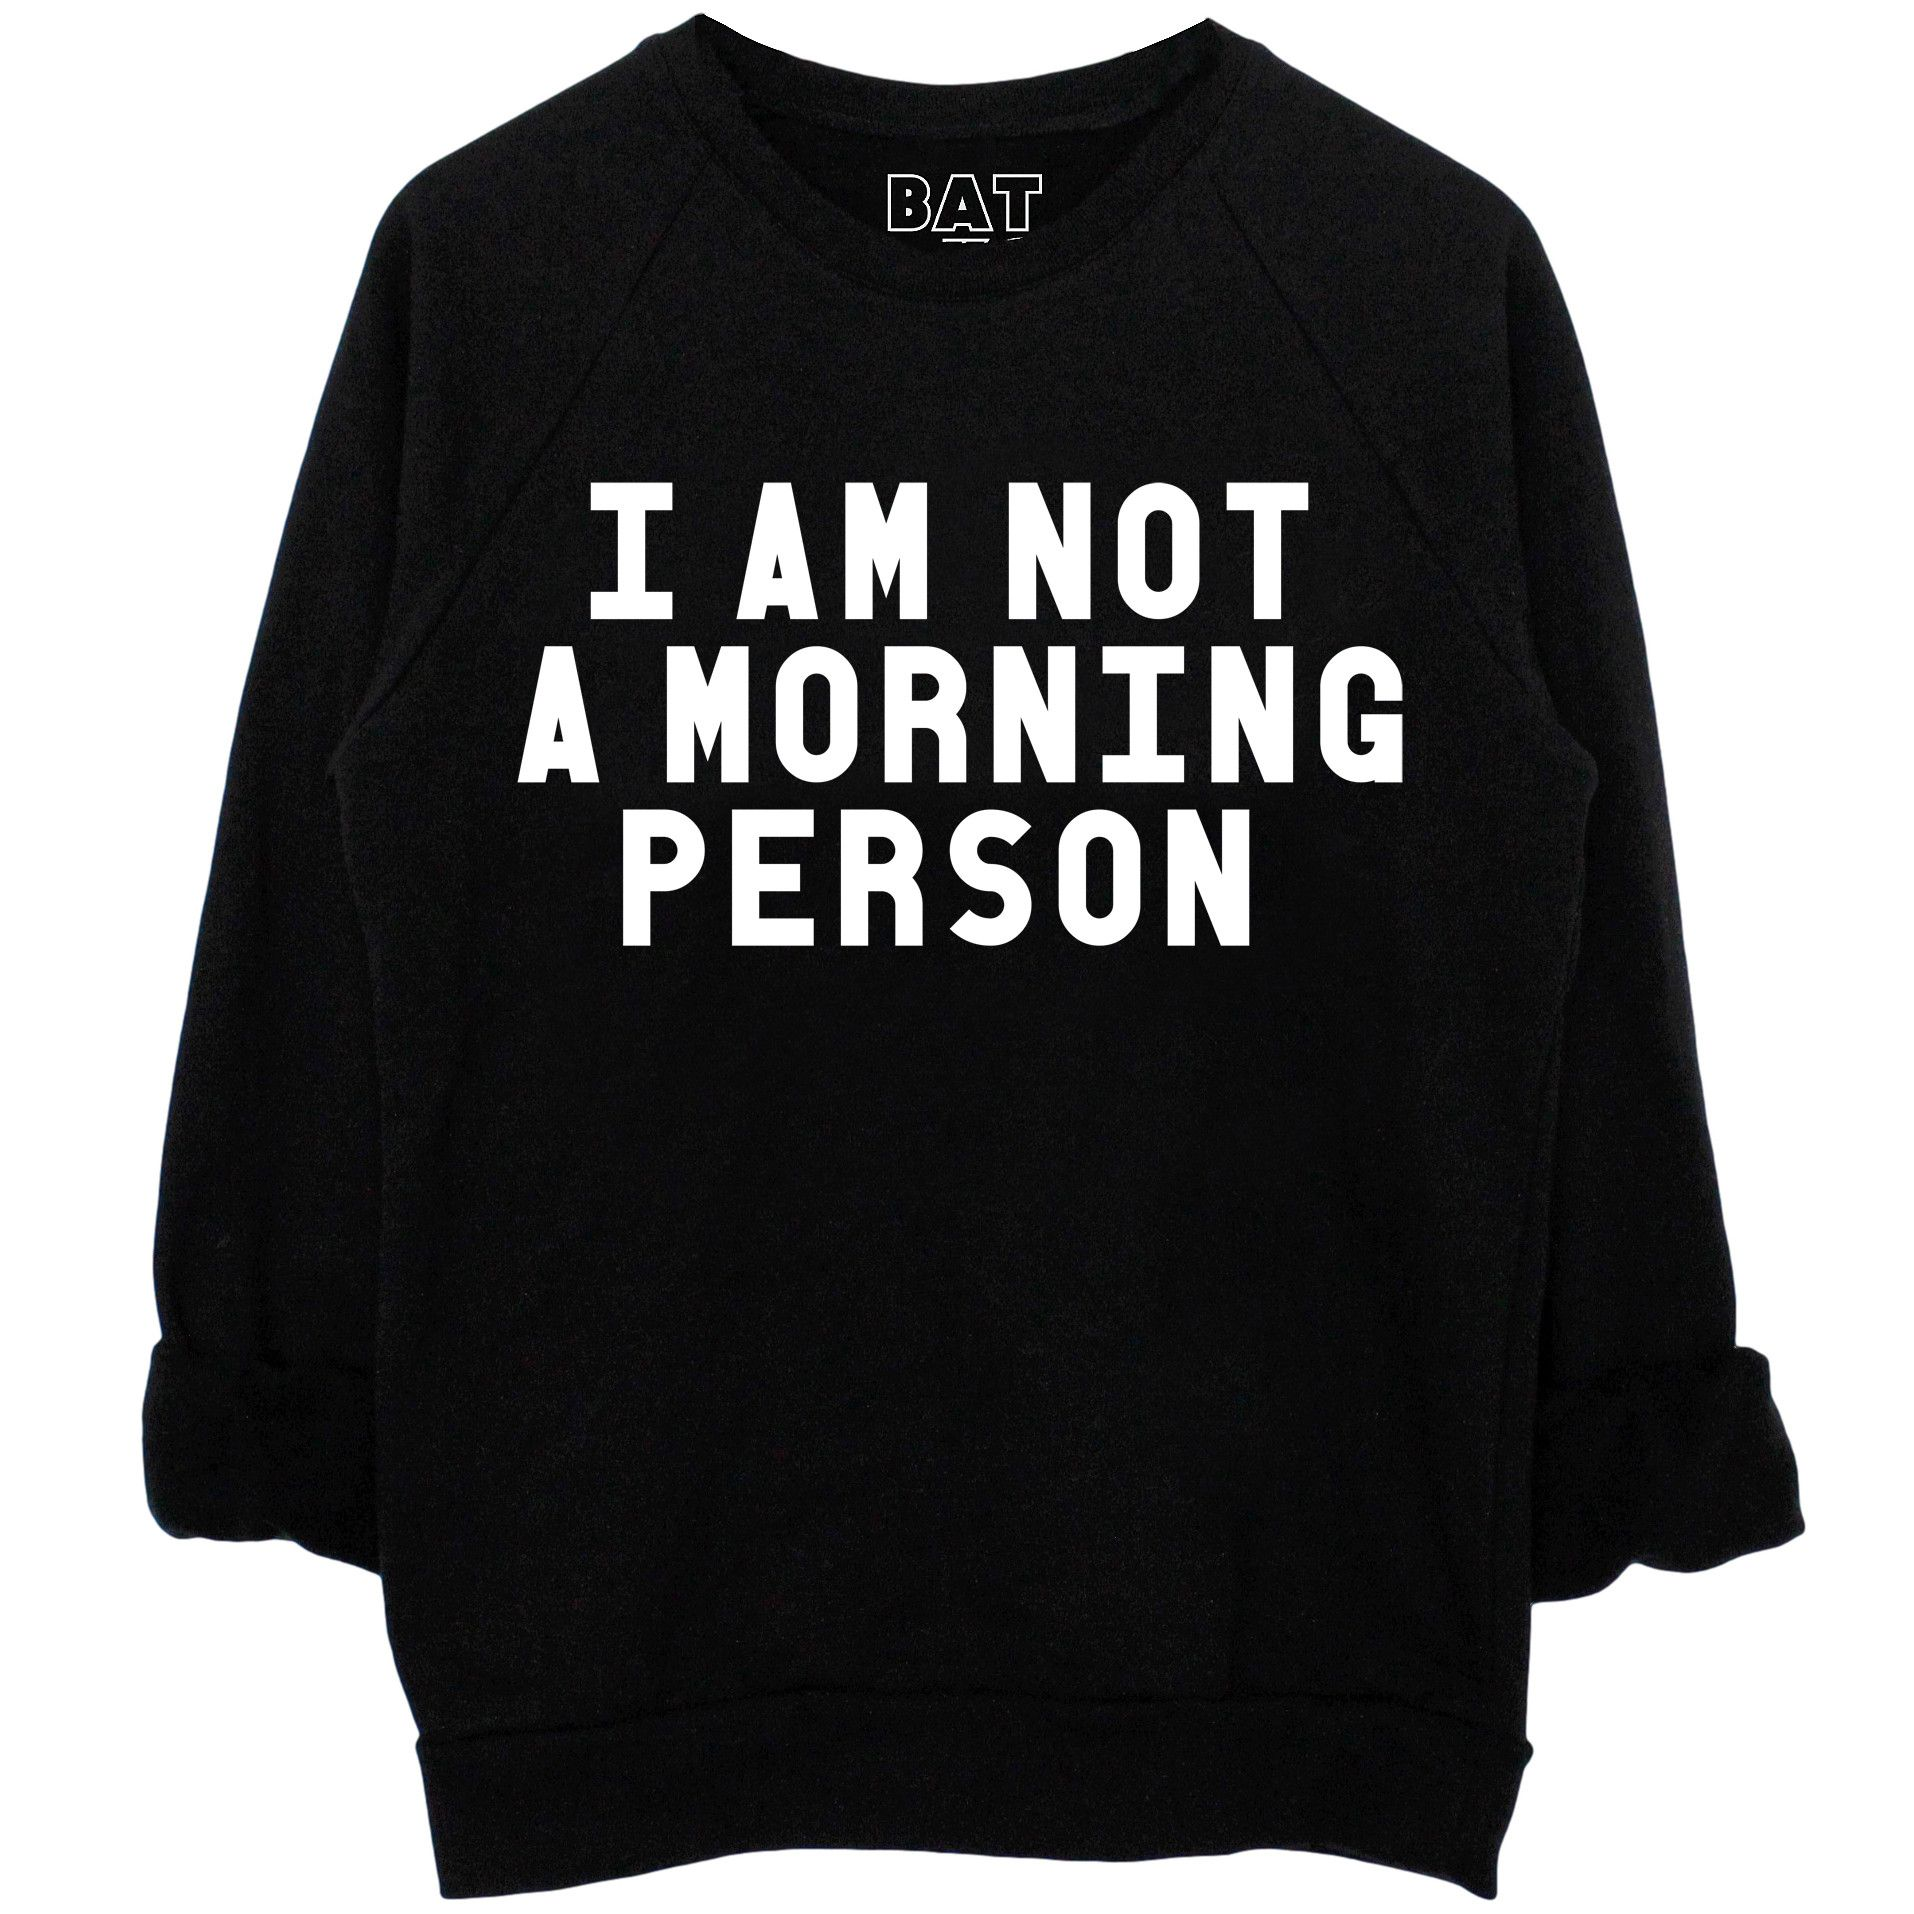 Women's White and Black I Am Not A Morning Person Slogan Sweatshirt – BATOKO